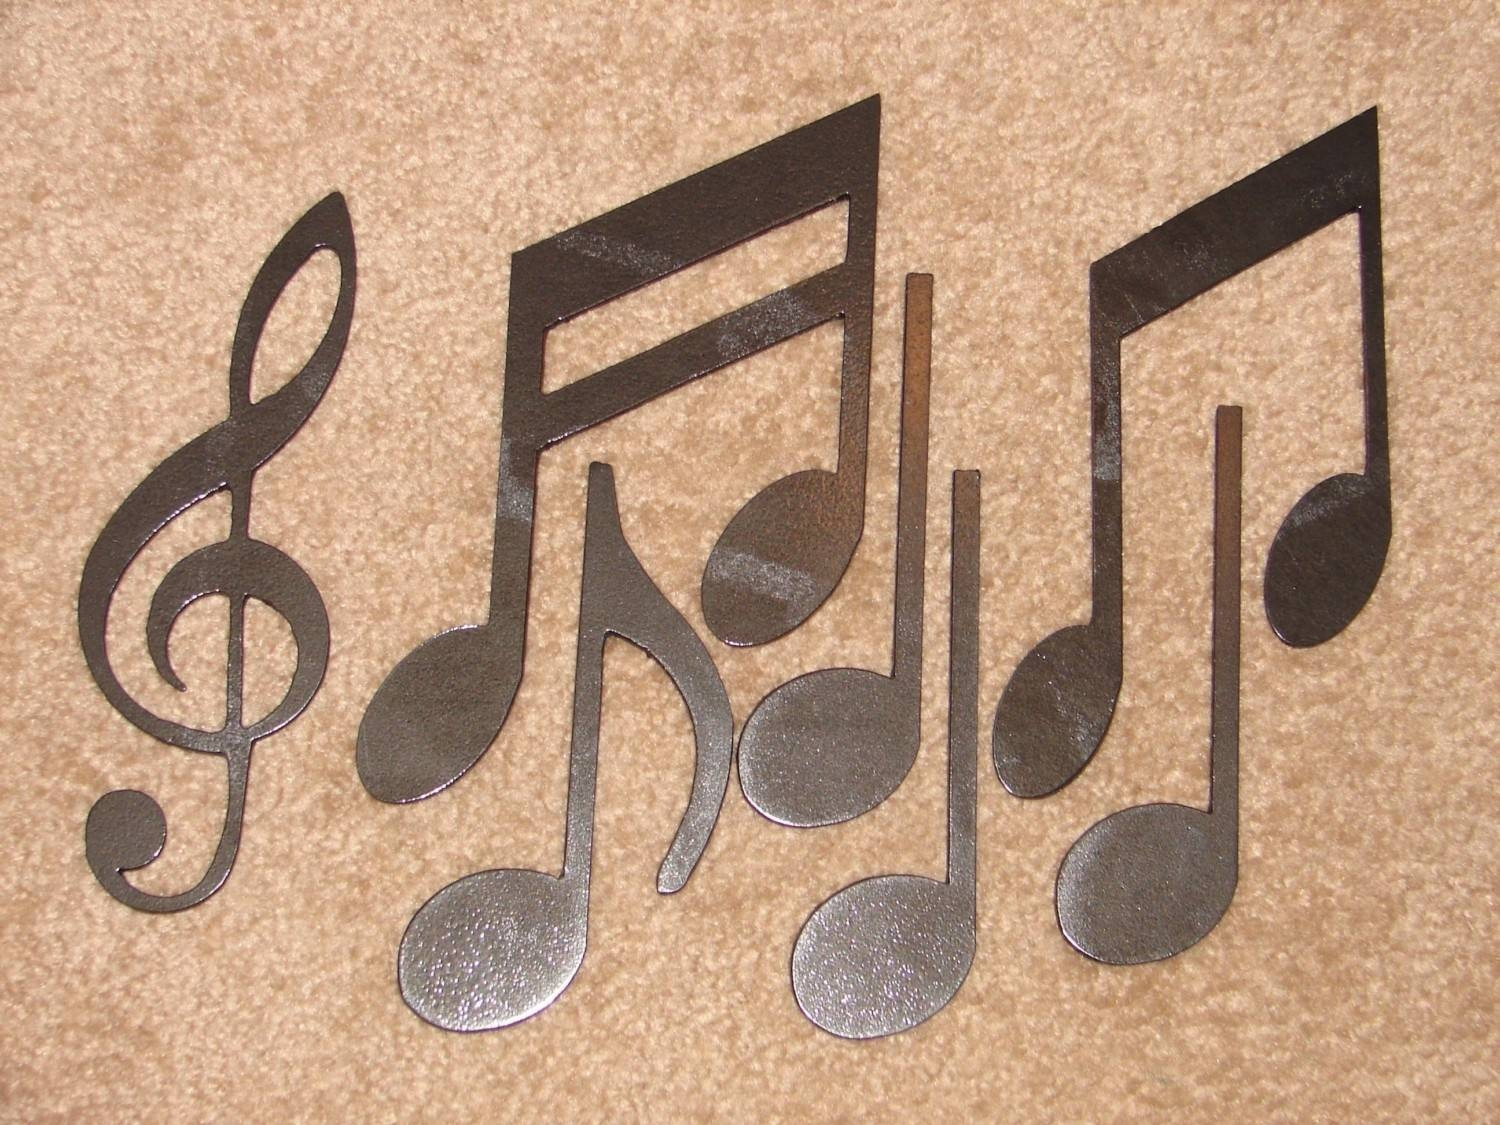 Metal Wall Art Decor Music Notes Musical Note Patio Within Recent Music Note Wall Art (View 6 of 20)